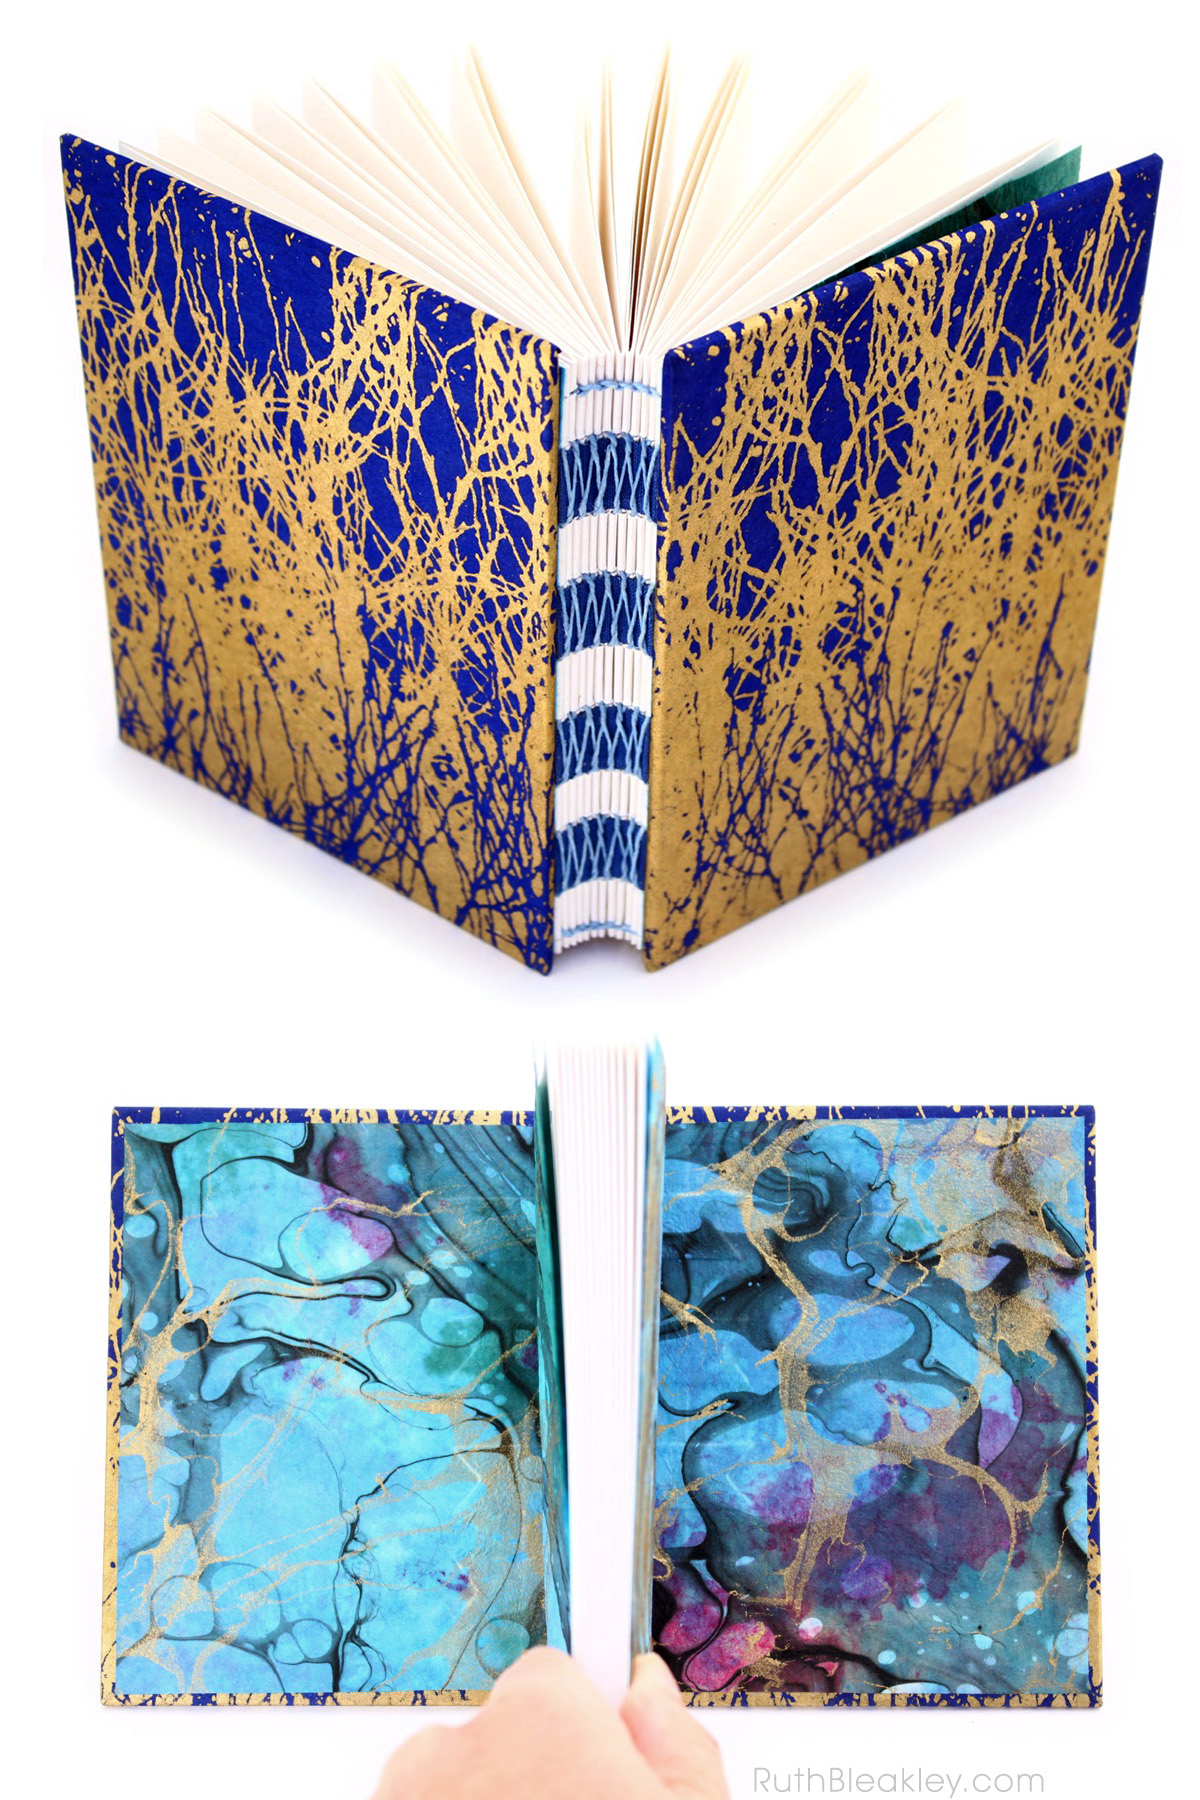 Colorful Marbled Handmade Unlined Journal by Ruth Bleakley